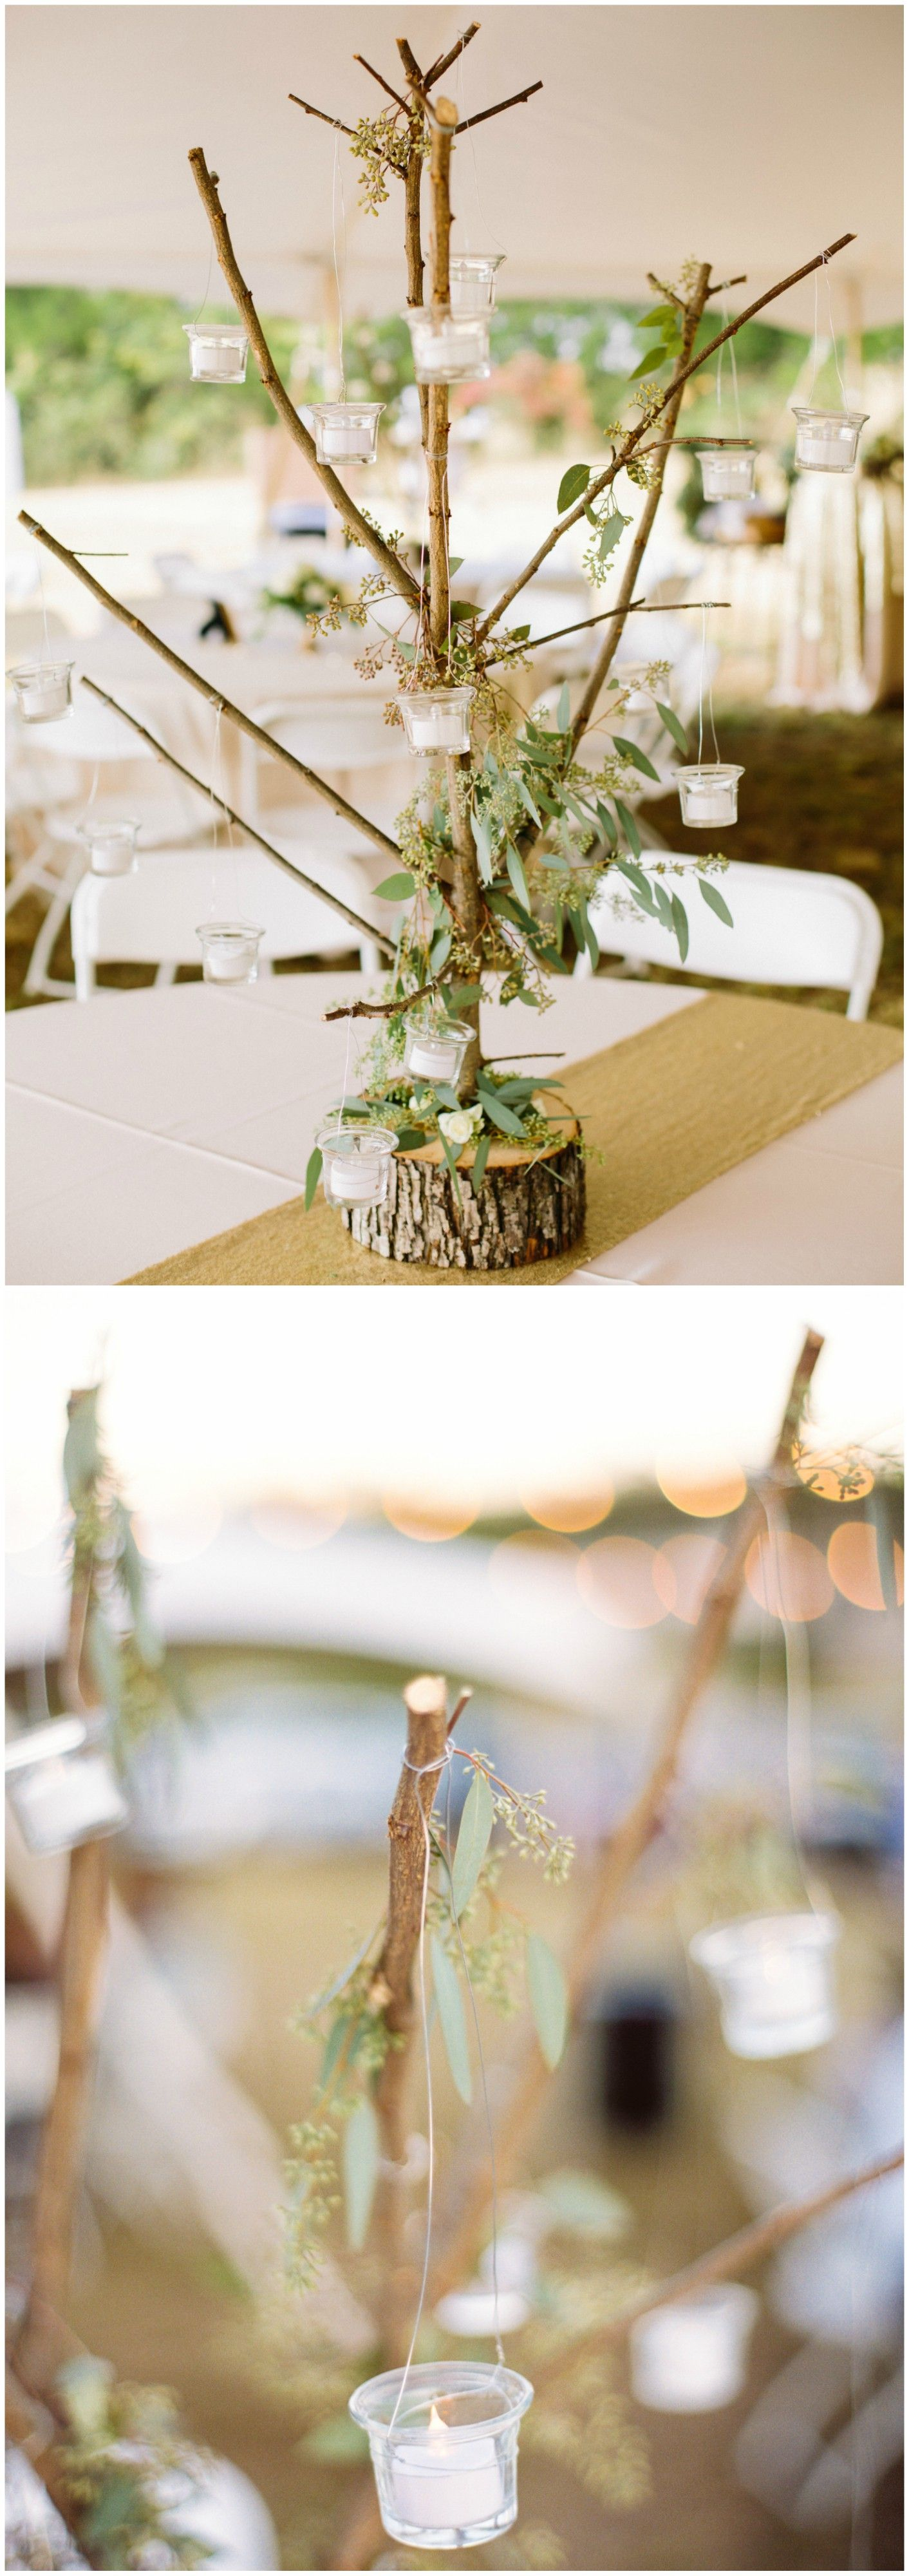 The Smarter Way to Wed | Wedding reception centerpieces, Reception ...